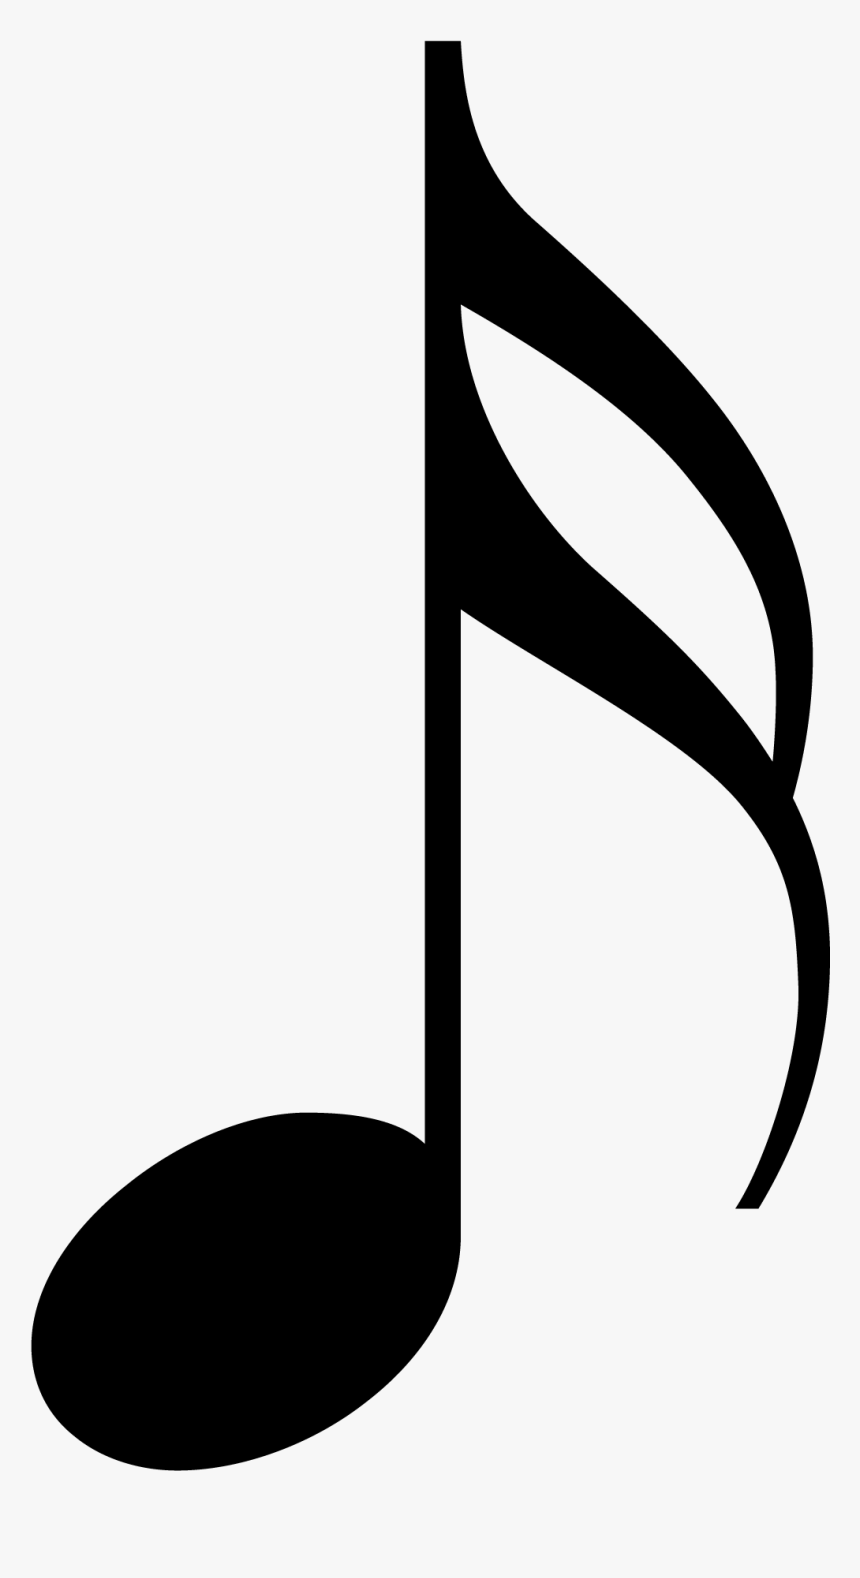 Music Note Pictures For Training - Music Note Tattoo Stencils, HD Png Download, Free Download